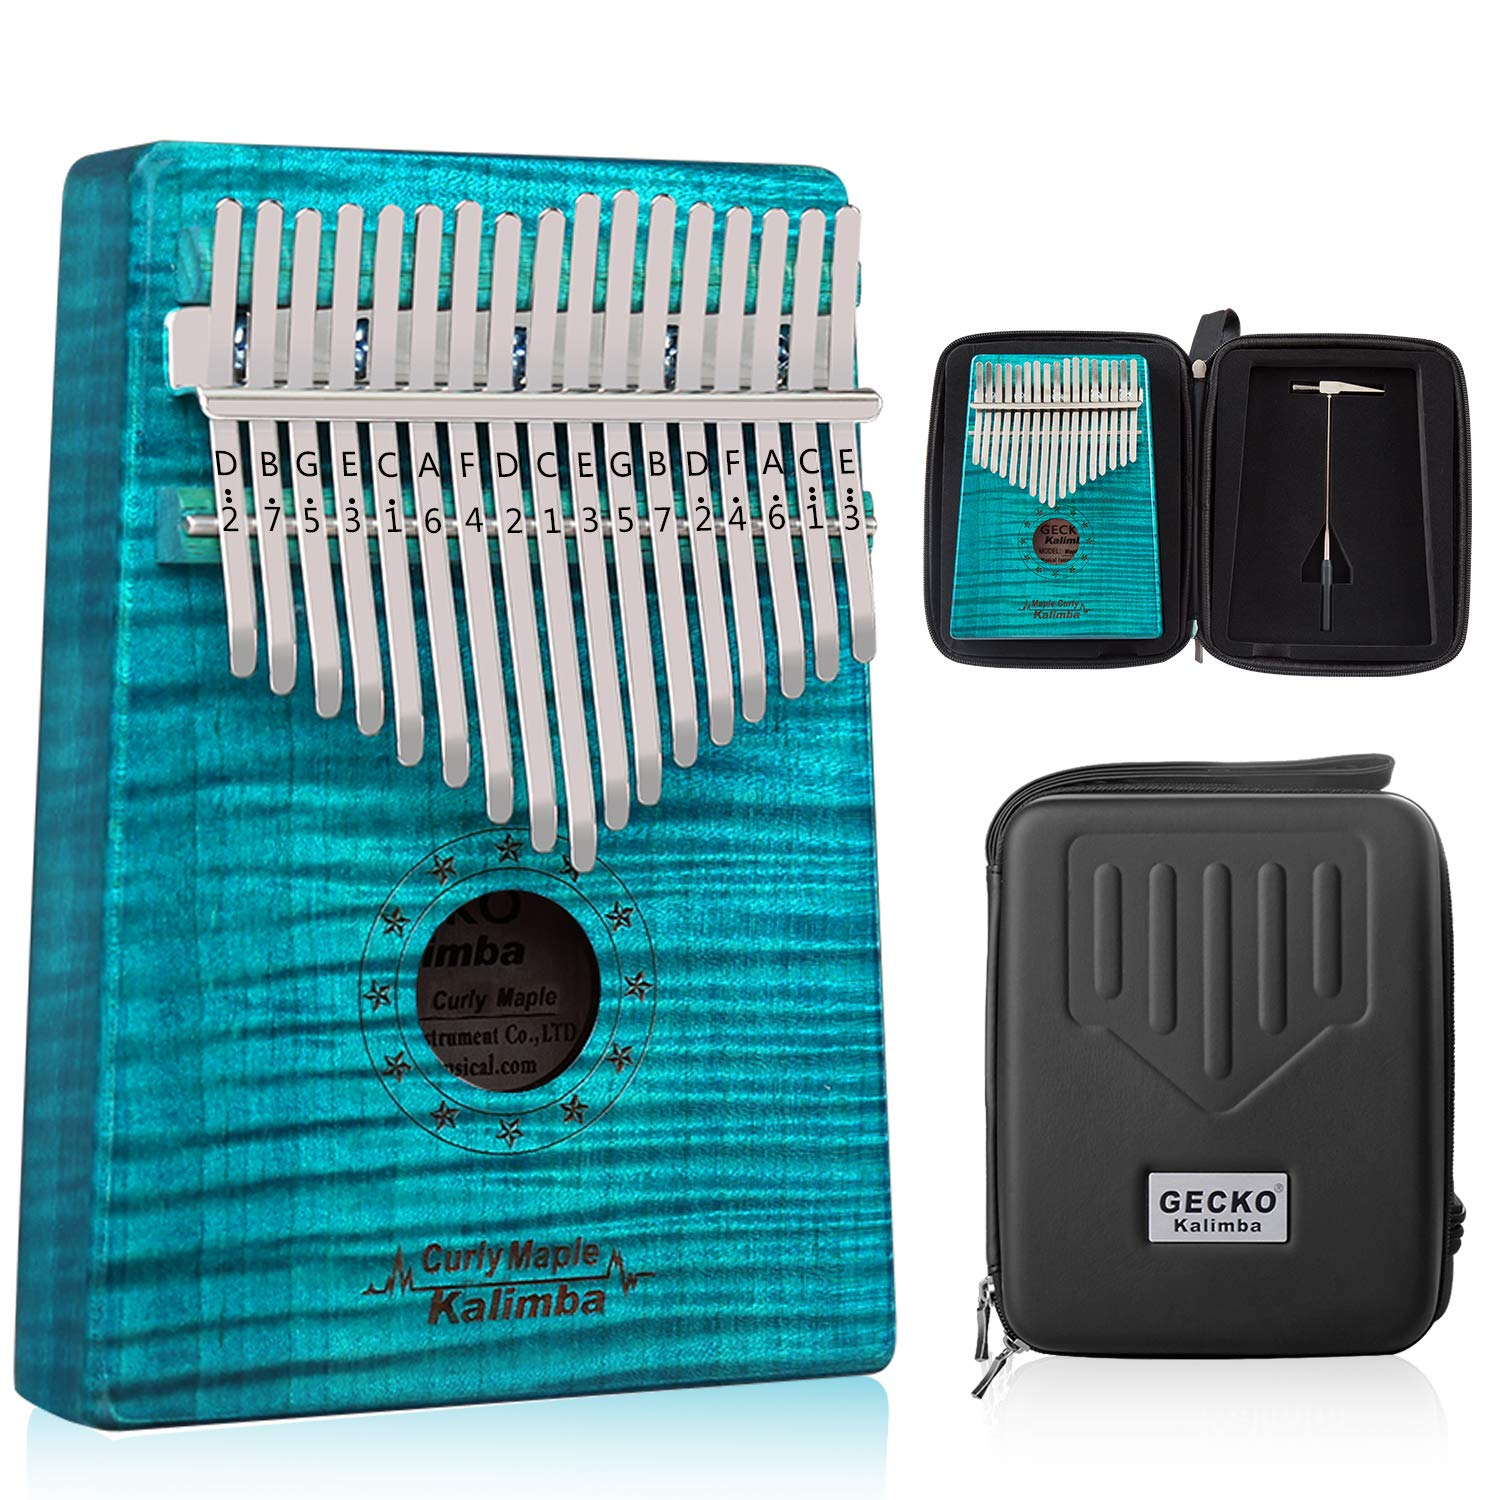 GECKO Kalimba 17 Key Thumb Piano with Hardshell Case Study Instruction Song Book Tuning Hammer for Beginners C Tone Tuned (Blue) by MYTTLELE